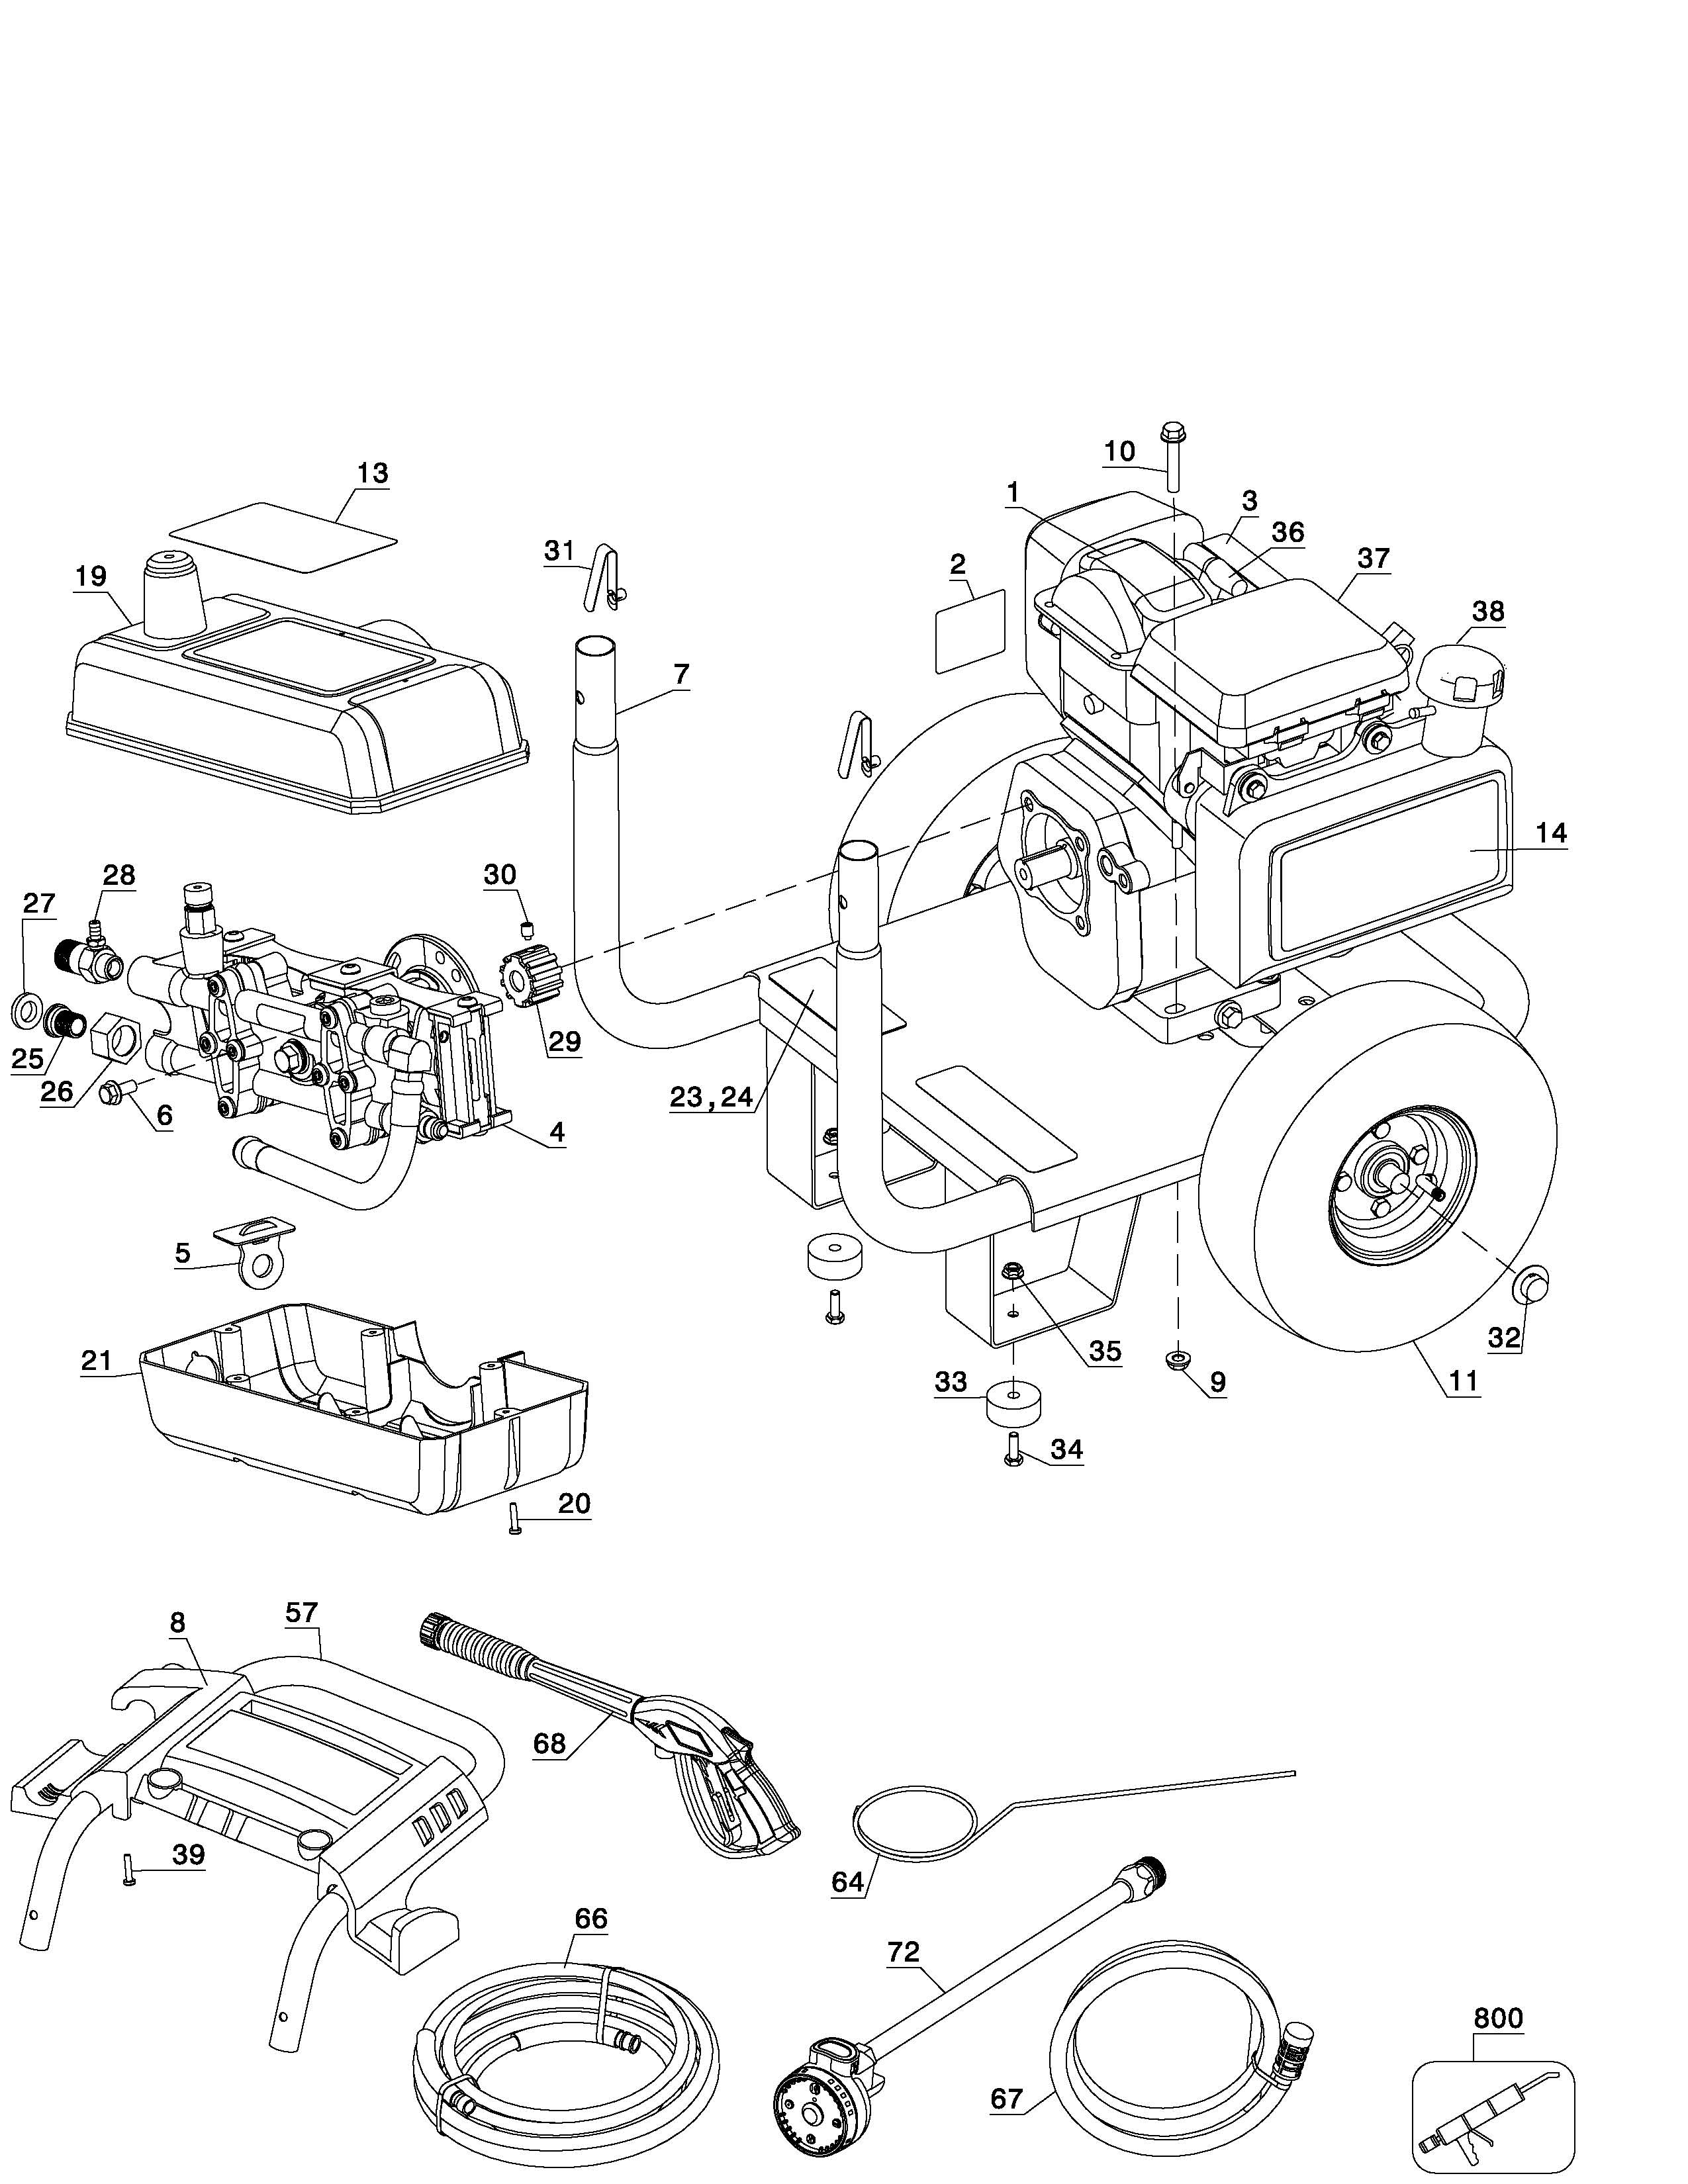 All Power Pressure Washer Parts Earthwise Wiring Diagrams Washers 2550x3300